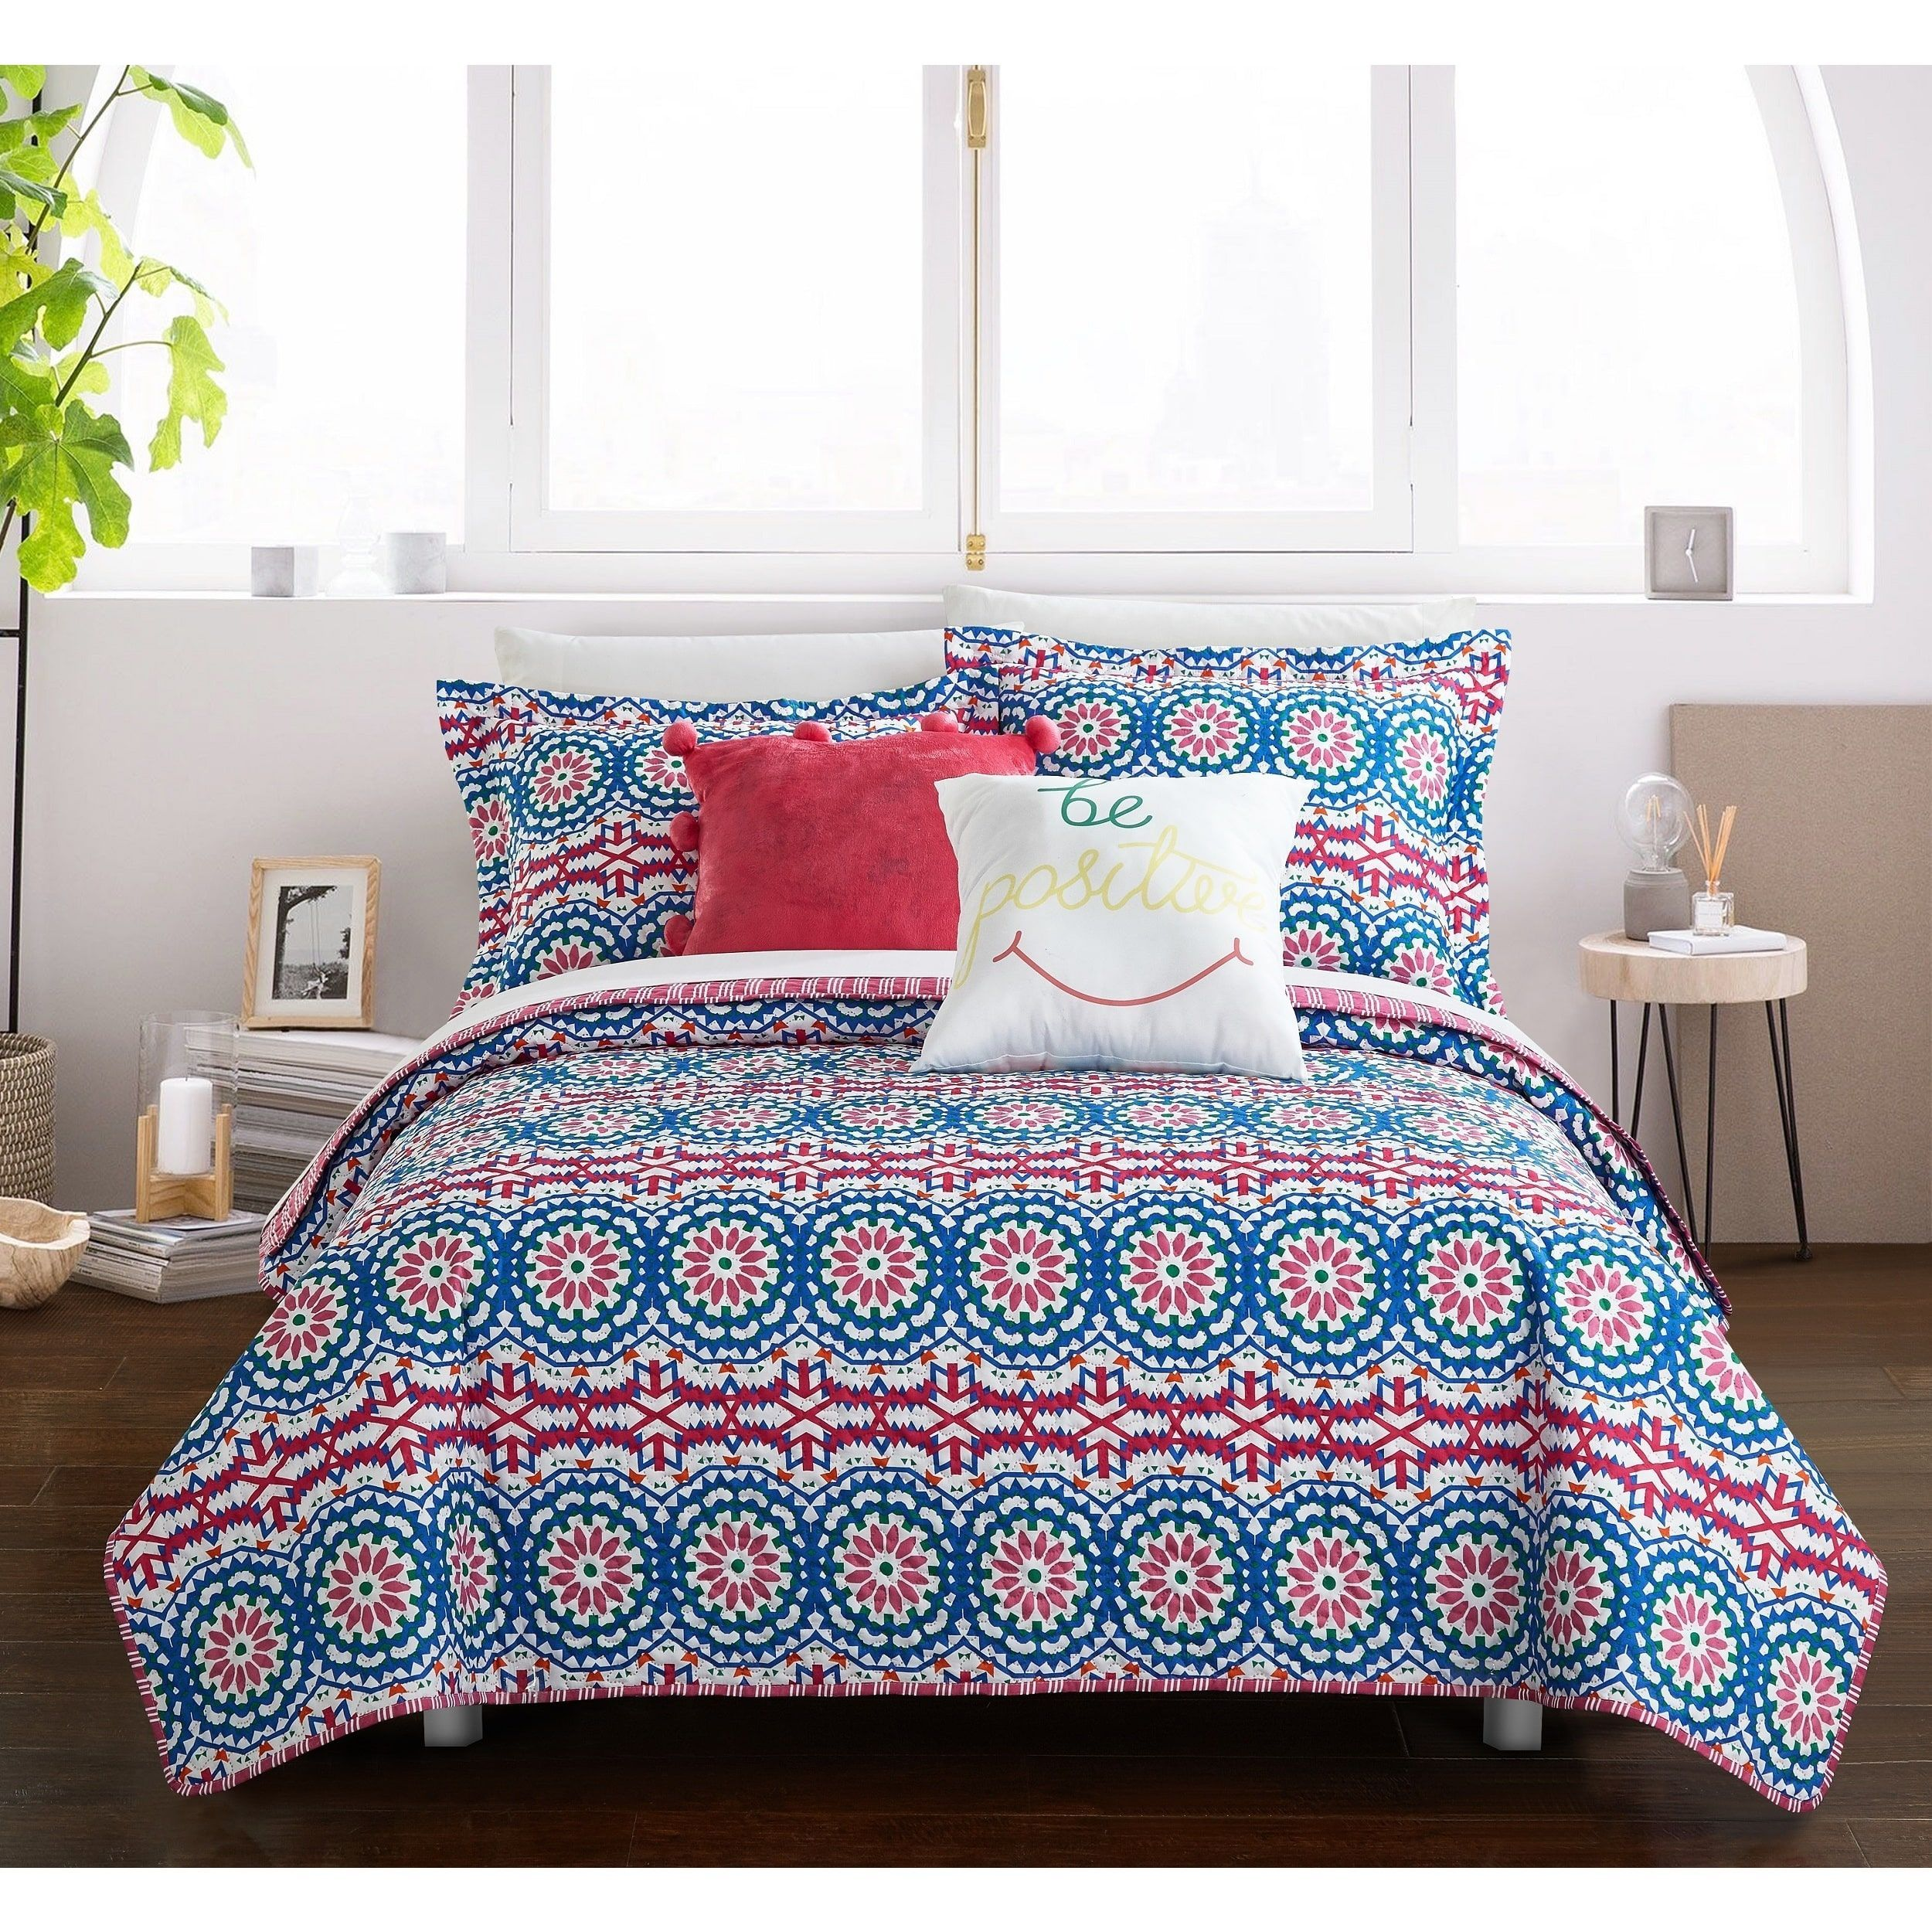 Chic Home Fuschia 9 Piece Reversible Bed In A Bag Set